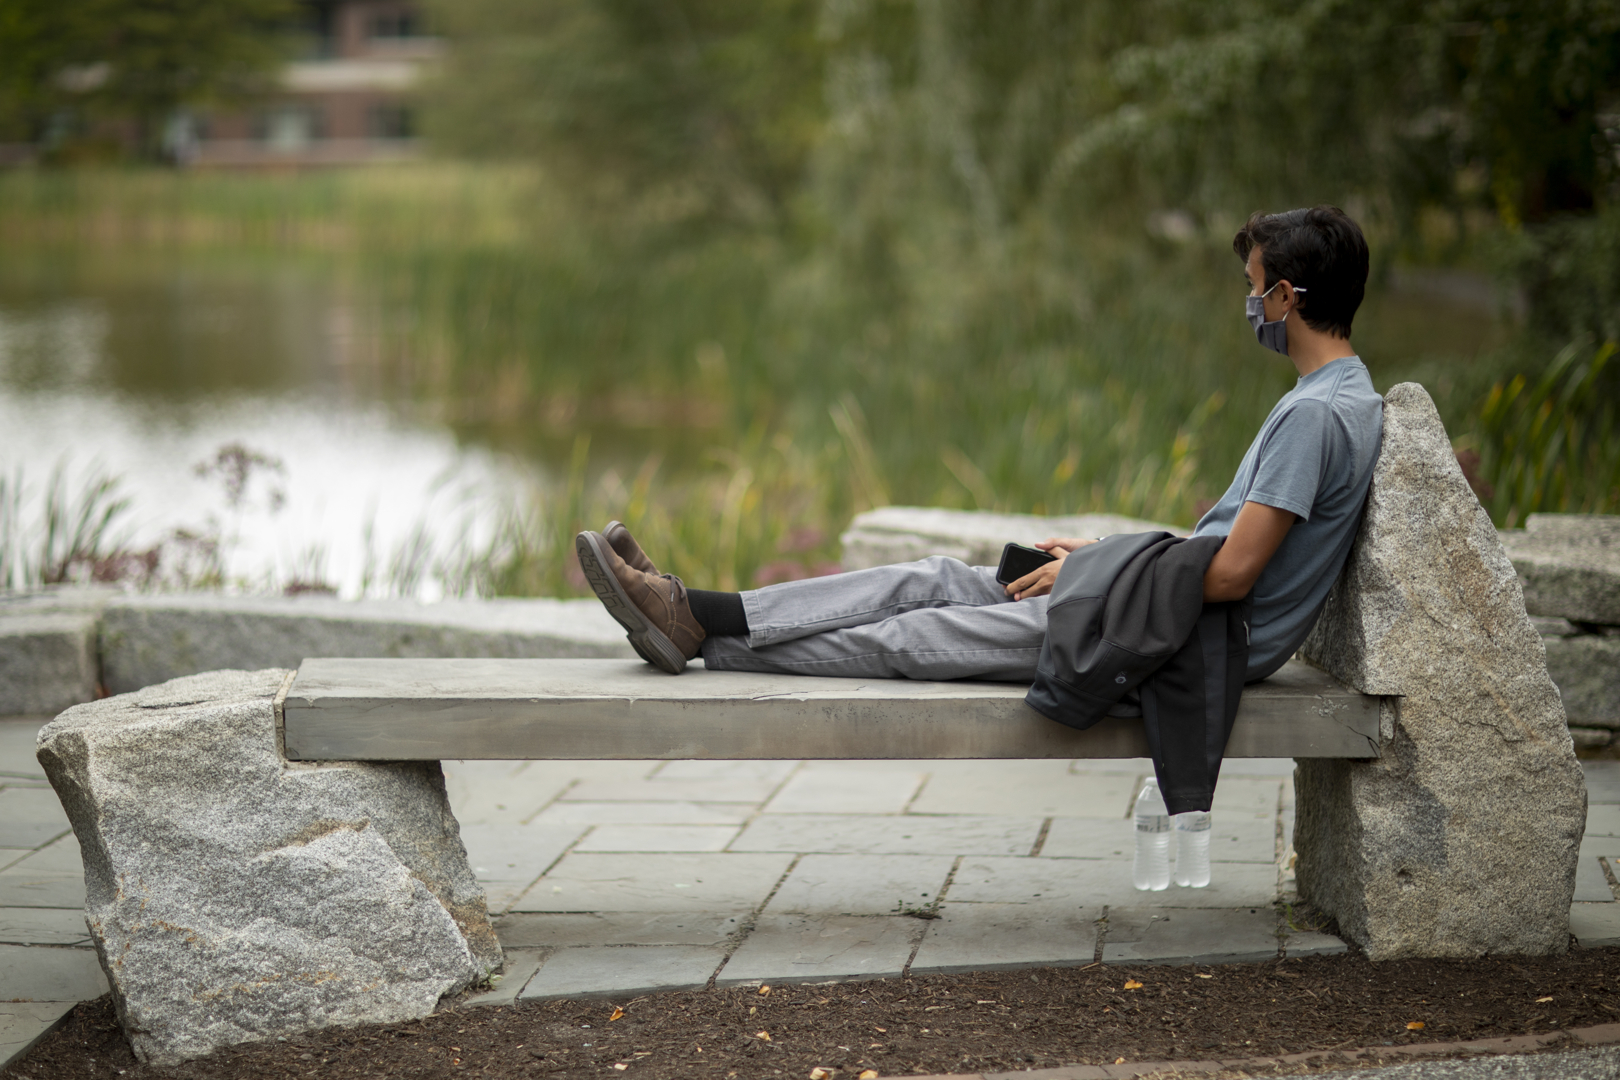 Cameron Frary '24 of Andover, Mass., gazes out over Lake Andrews after  finishing his lunch. This bench is one of his two favorite places, the other also adjacent to the Puddle. Frary is a new member of the Bates sailing club, so he's drawn to a water environment.